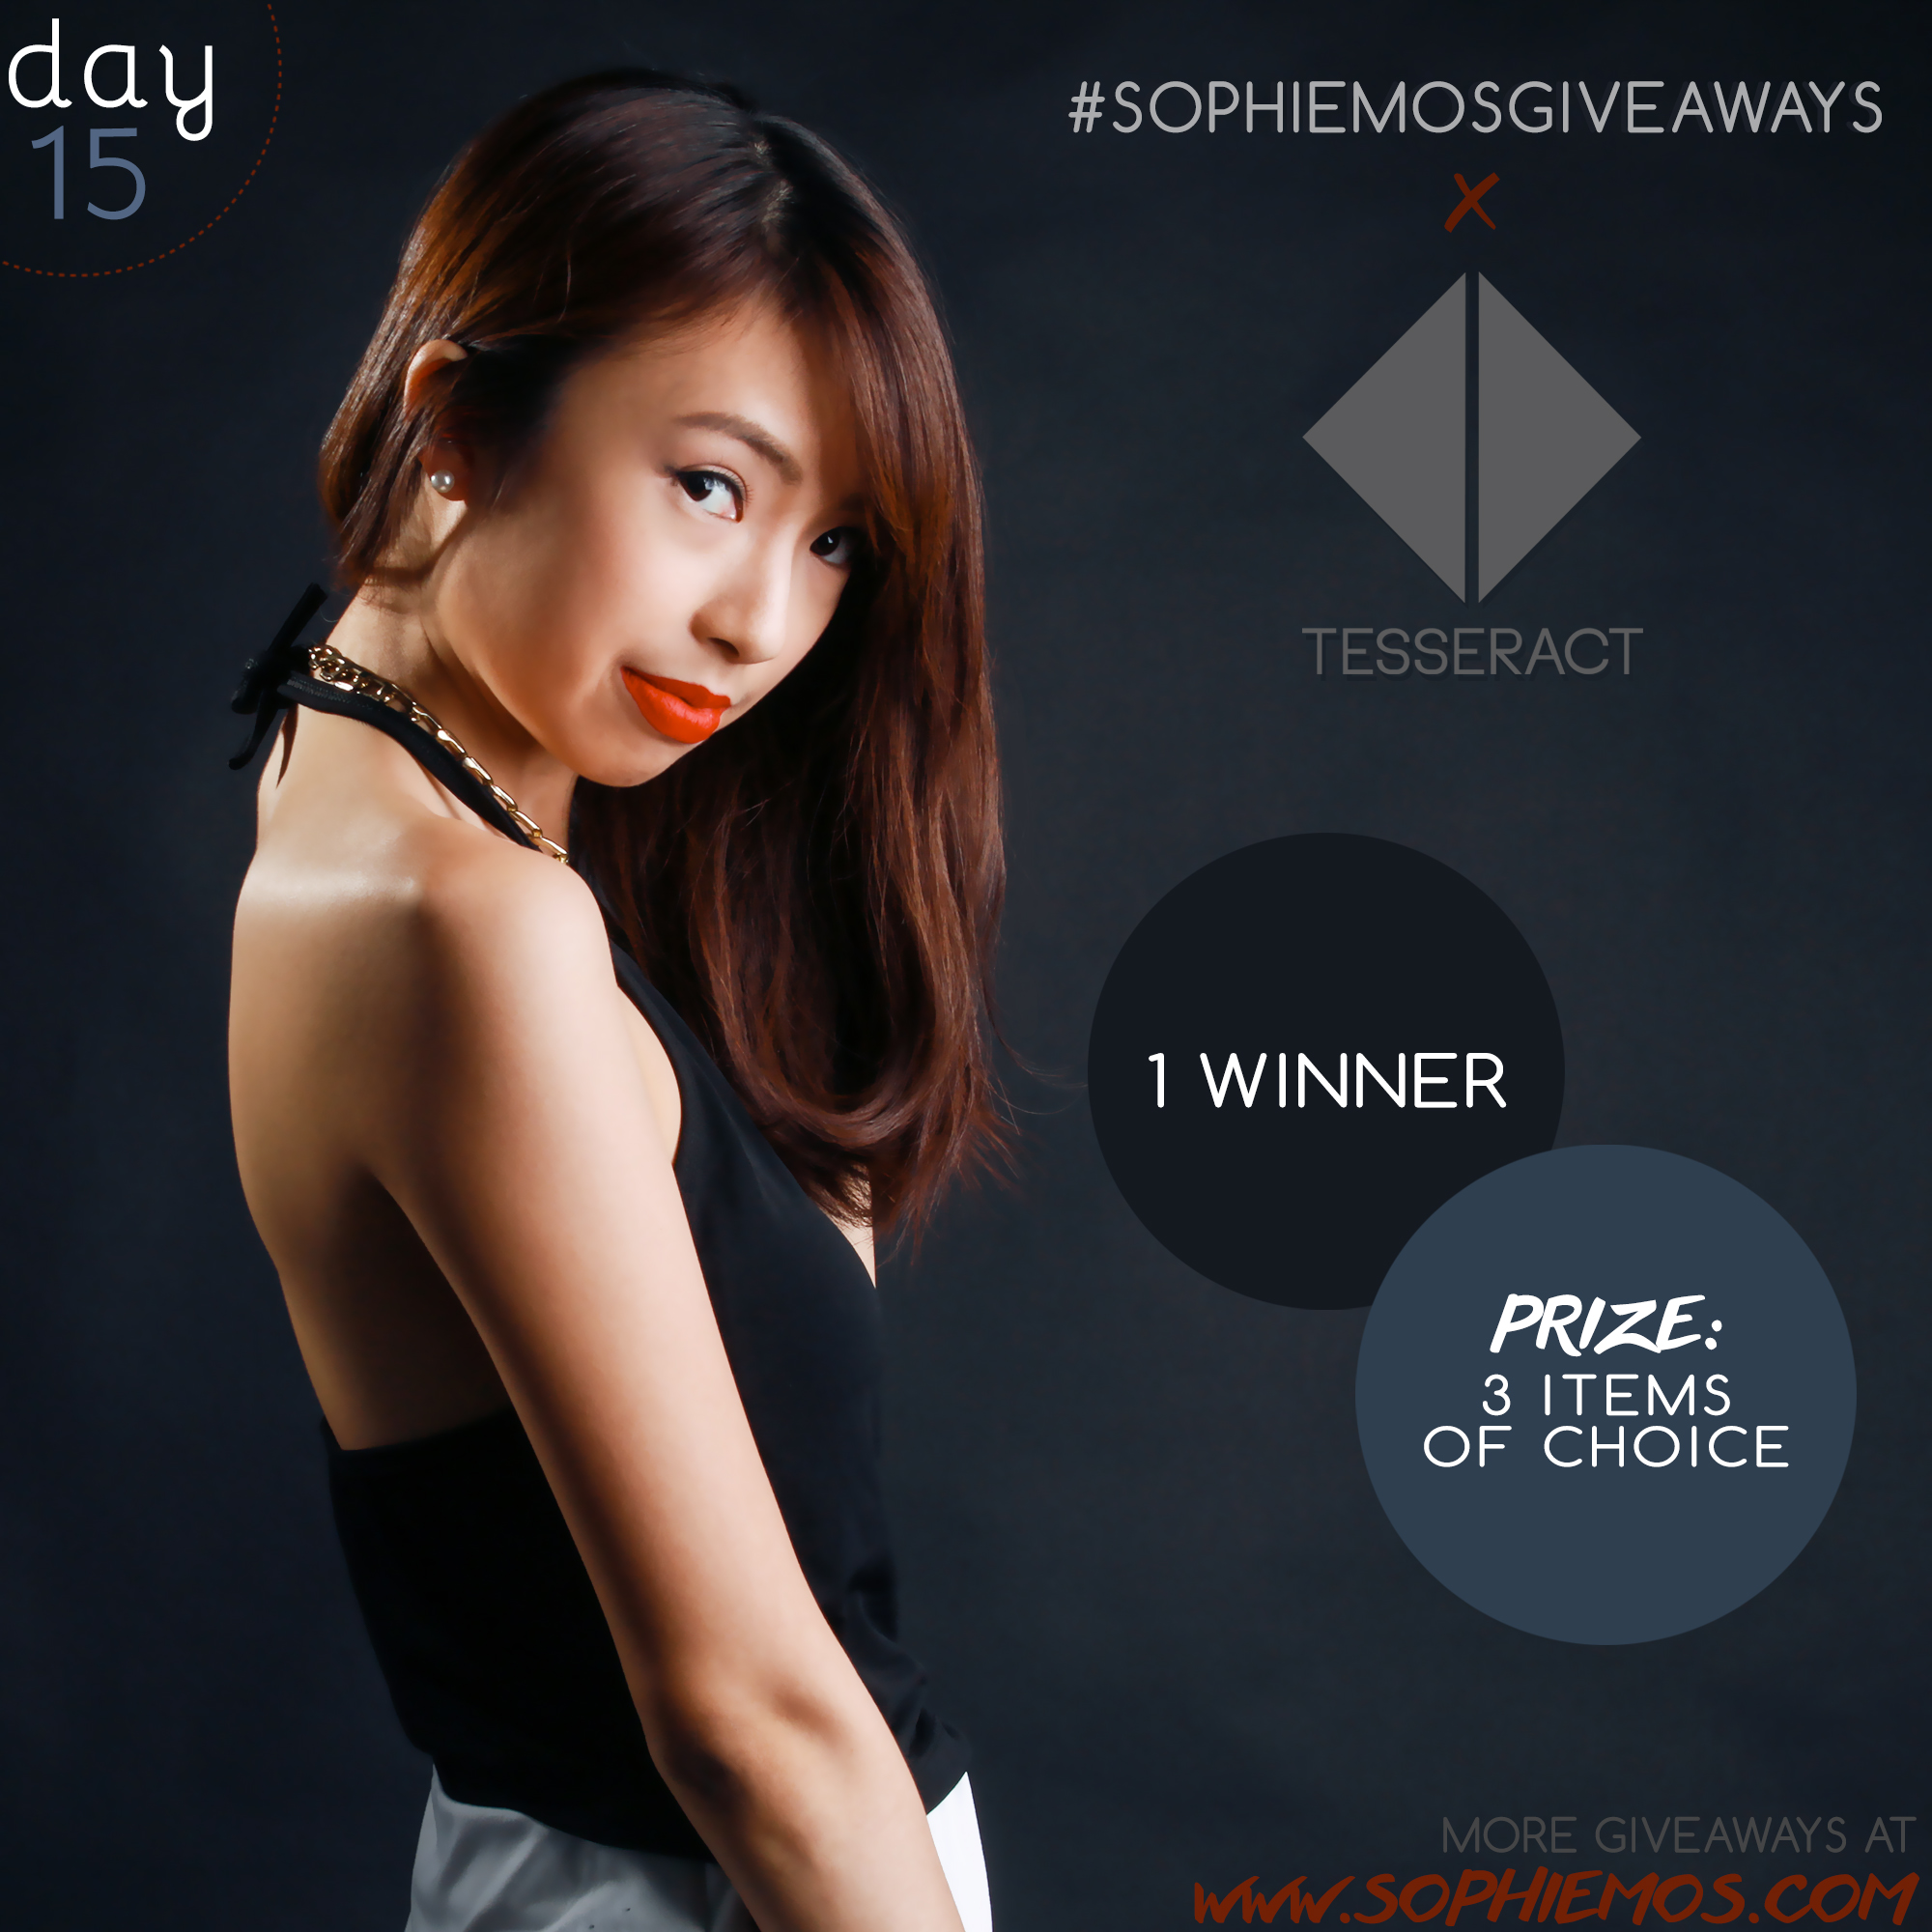 [CLOSED] DAY 15 OF #SOPHIEMOSGIVEAWAYS: TESSERACT MANILA